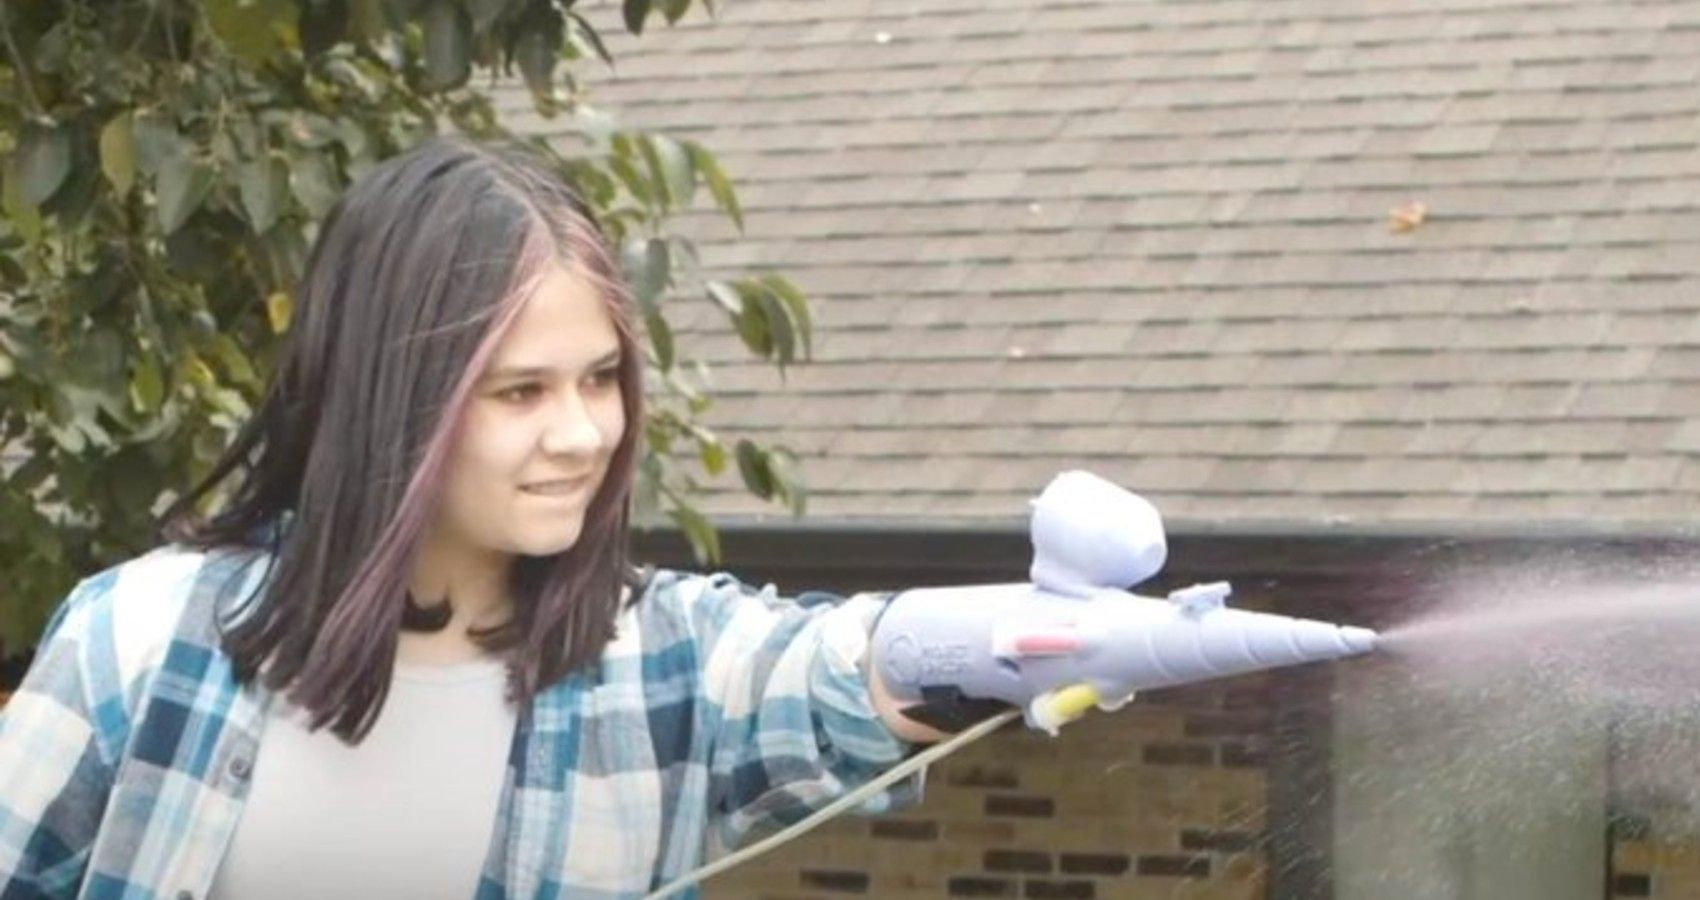 Teen Inventor Built Prosthetic Arm That Shoots Glitter | Moms.com